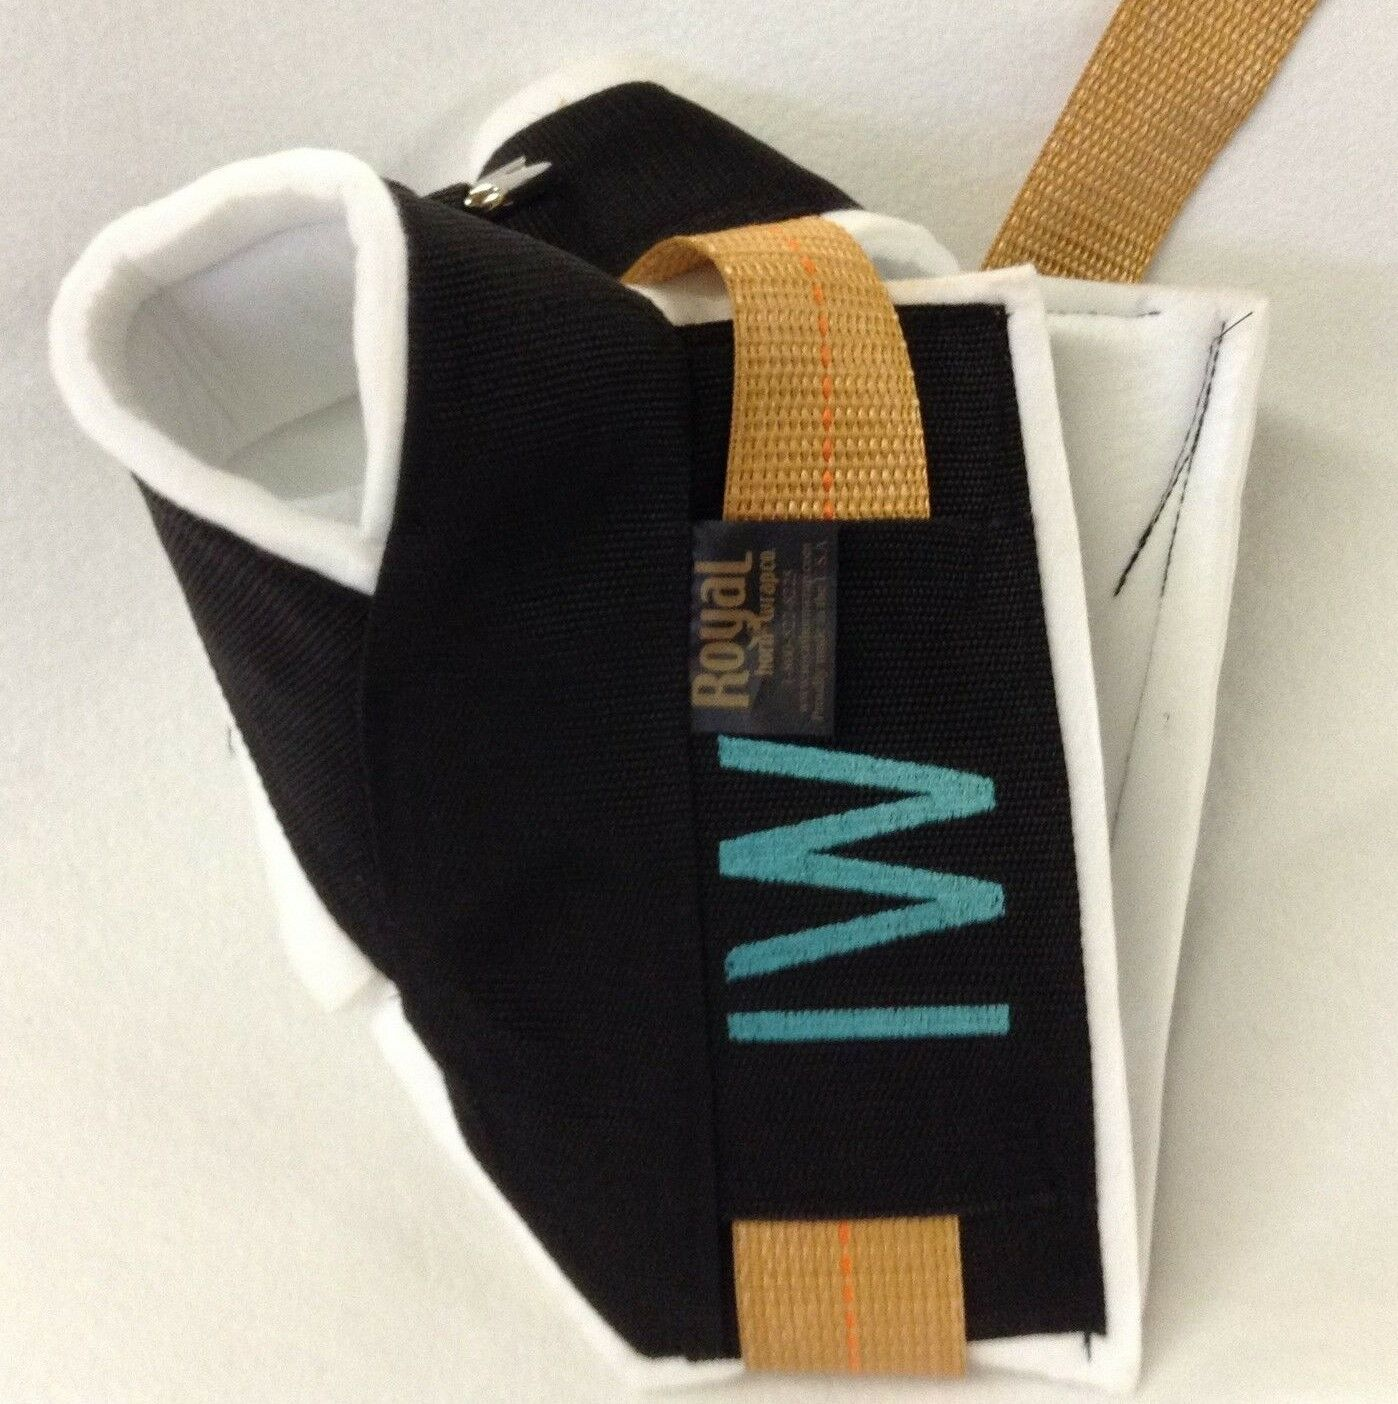 Horn Wraps YOUR OWN BRAND ROYAL HORN WRAP COMPANY Sold in a Lot 12 Rope Steers